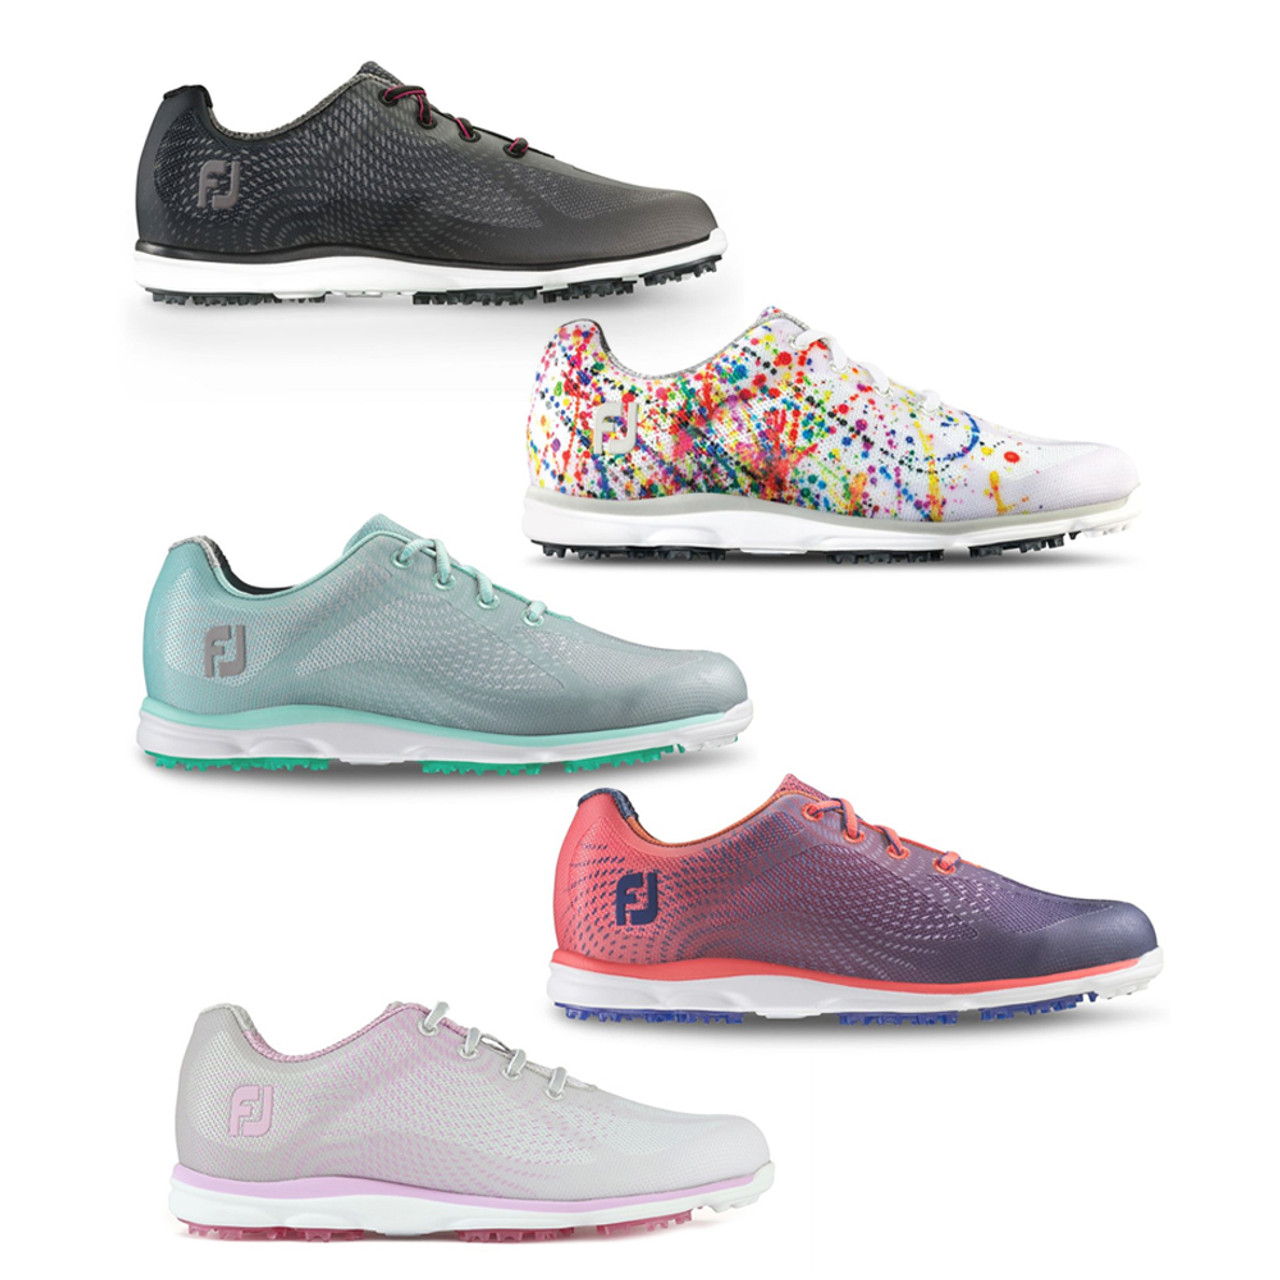 spikeless golf shoes on sale